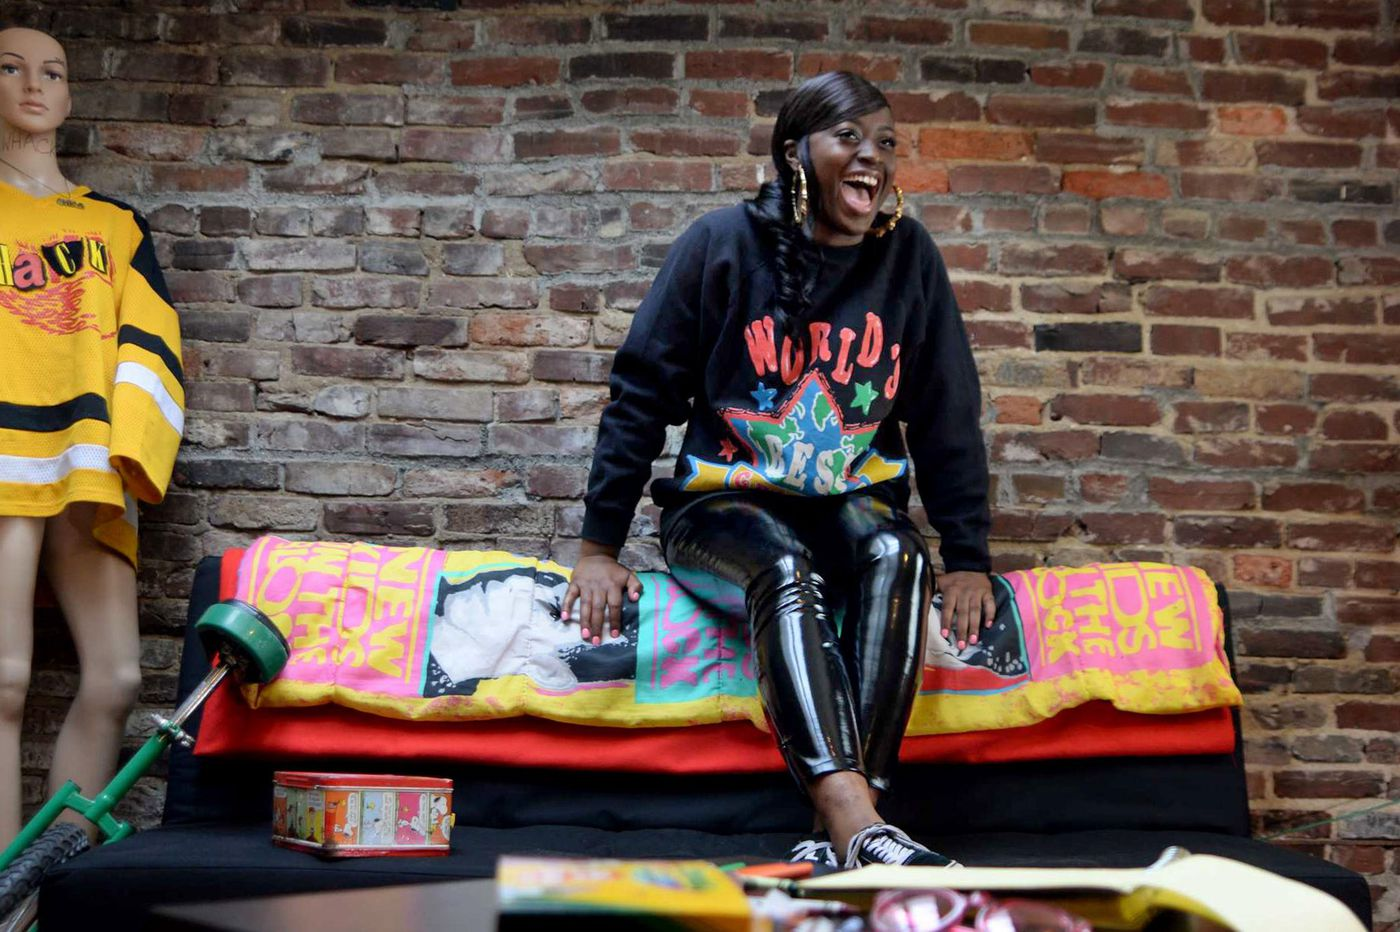 Philly's Made in America Festival is coming up; Tioga neighborhood deals with aftermath of police shooting | Morning Newsletter